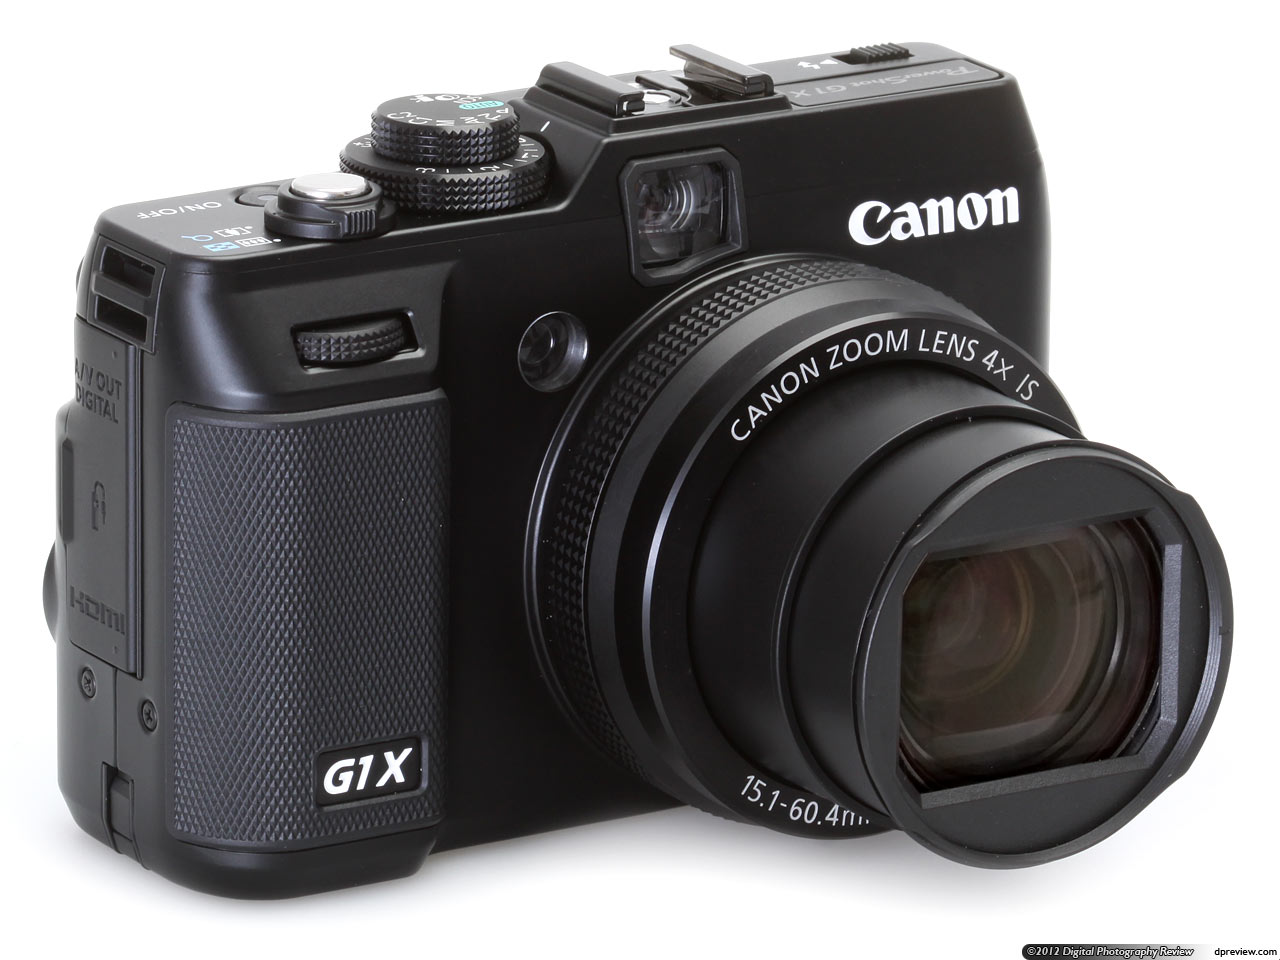 canon powershot g1 x review digital photography review rh dpreview com canon g1x user manual pdf canon g1x user manual pdf